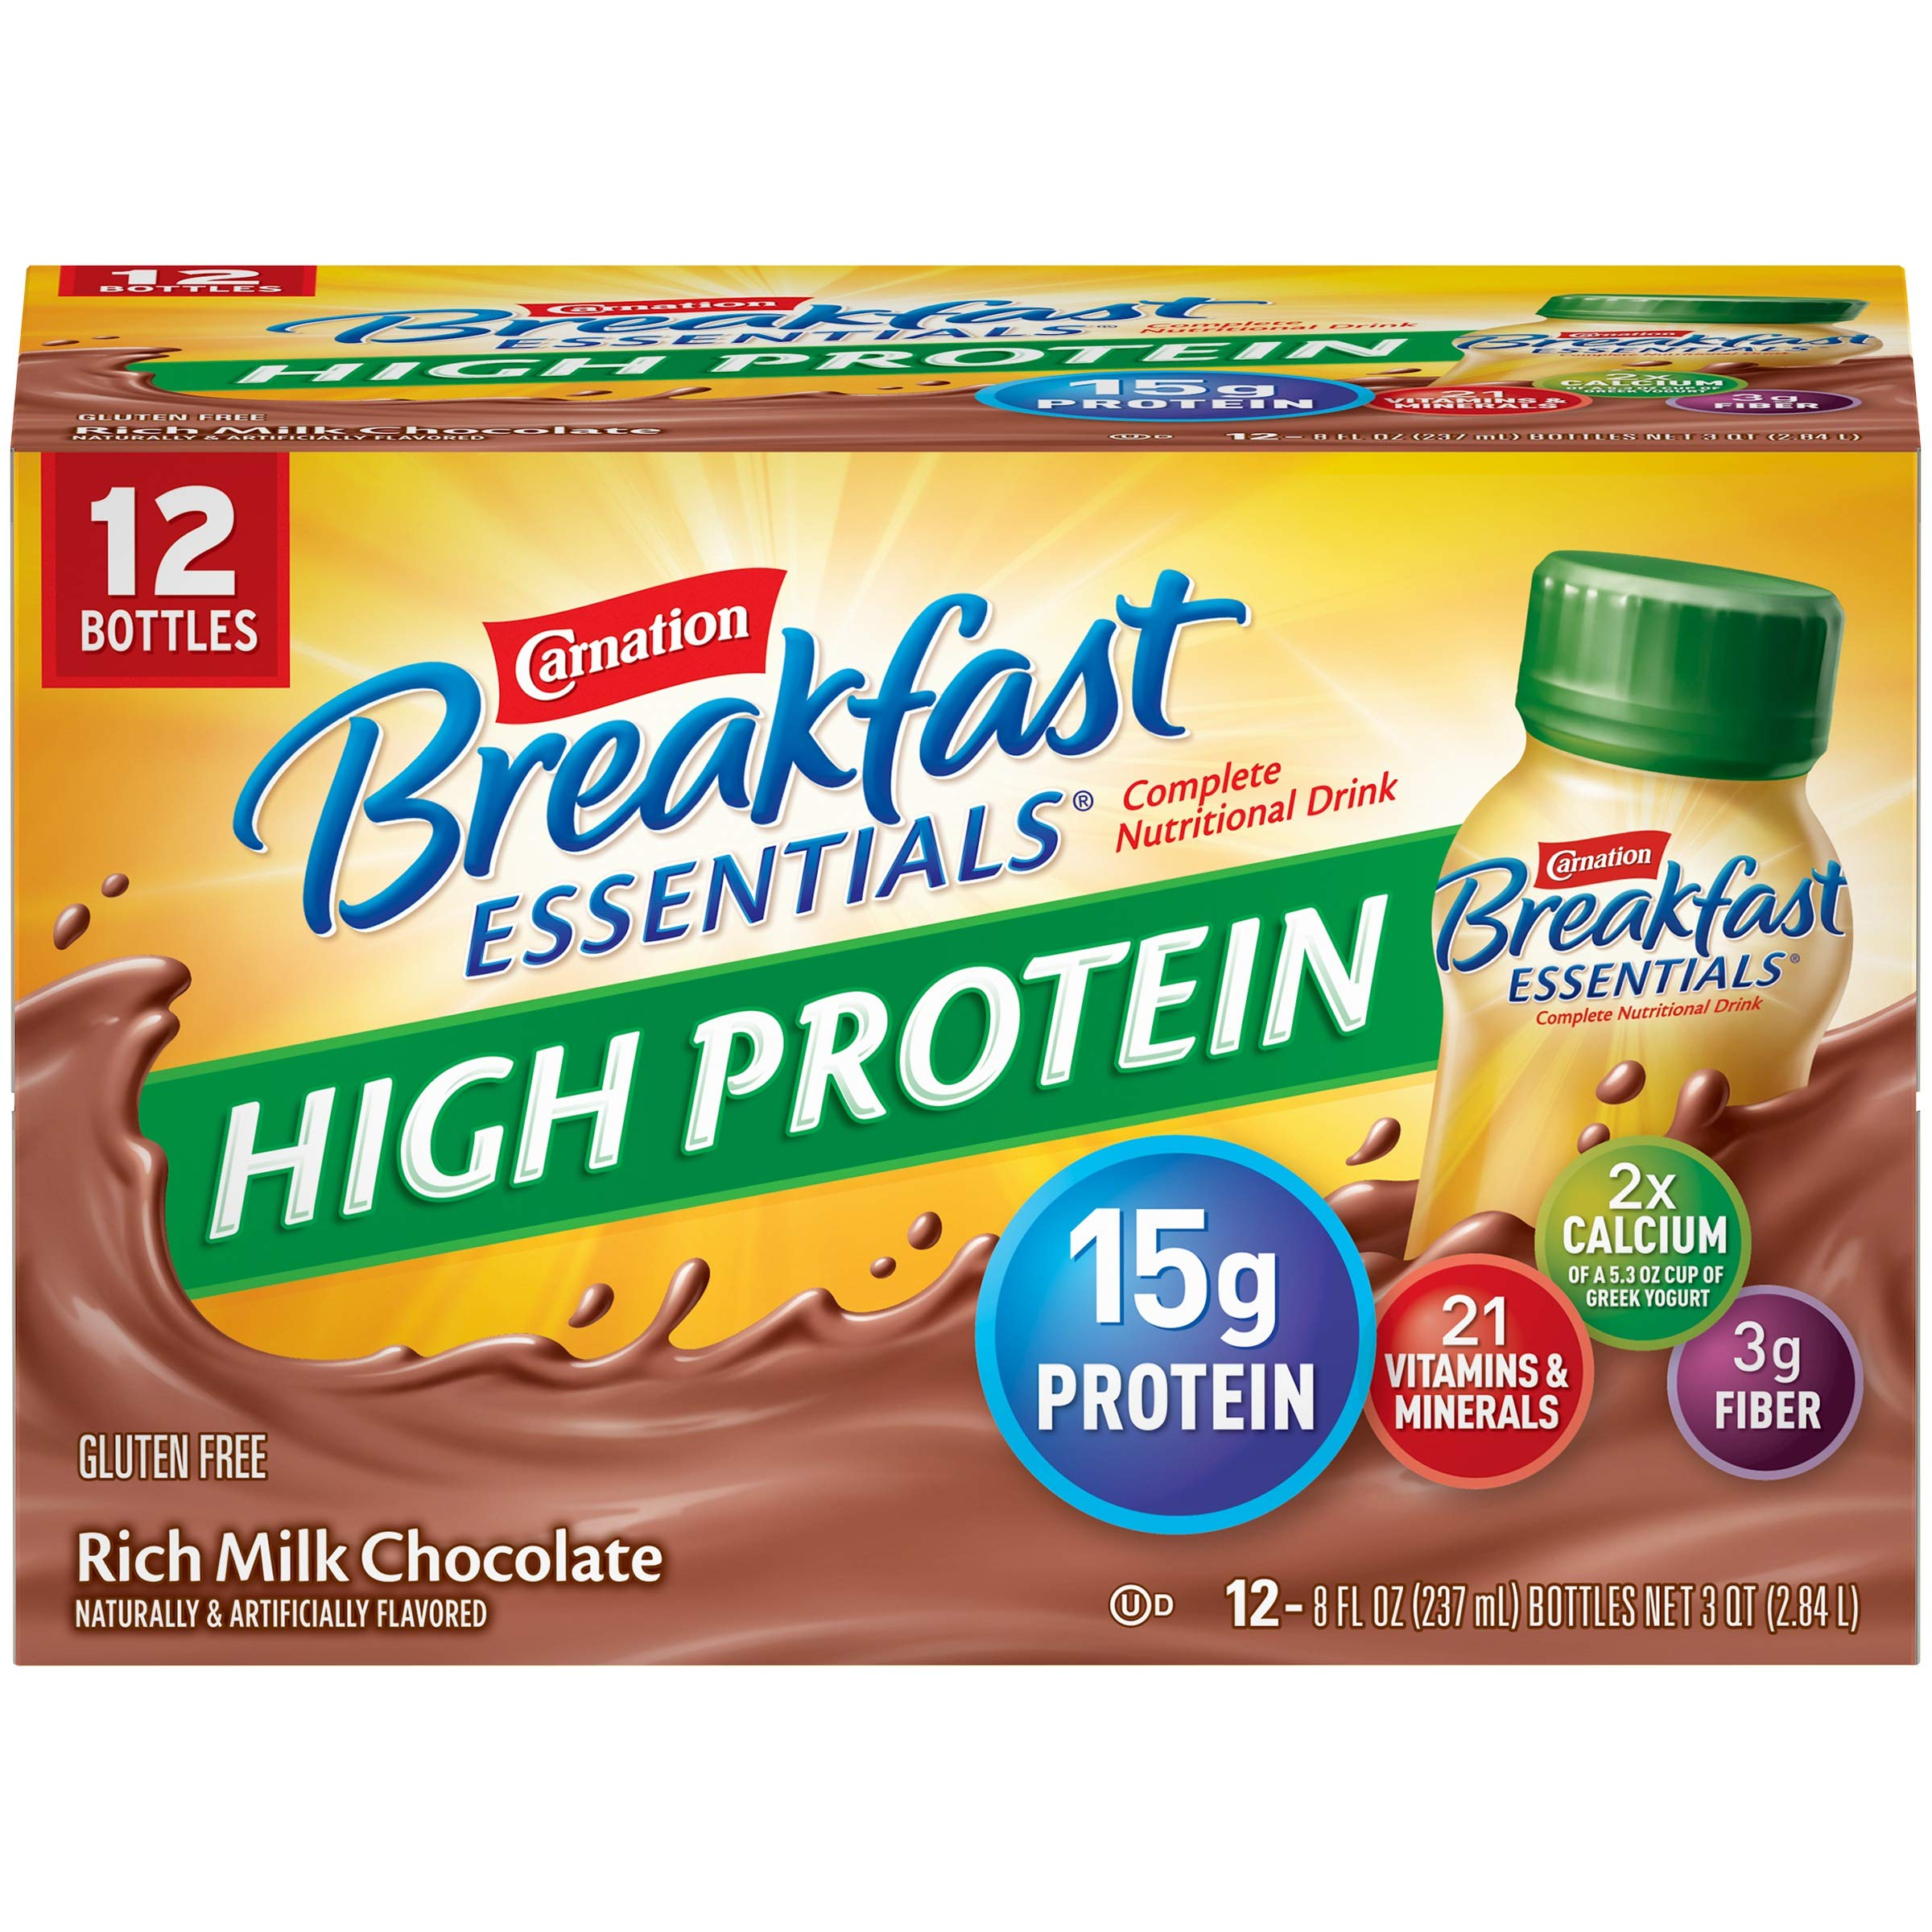 Carnation Breakfast Essentials High Protein Ready To Drink, Rich Milk Chocolate, 8 Fluid Ounce - Pack of 48 by Carnation